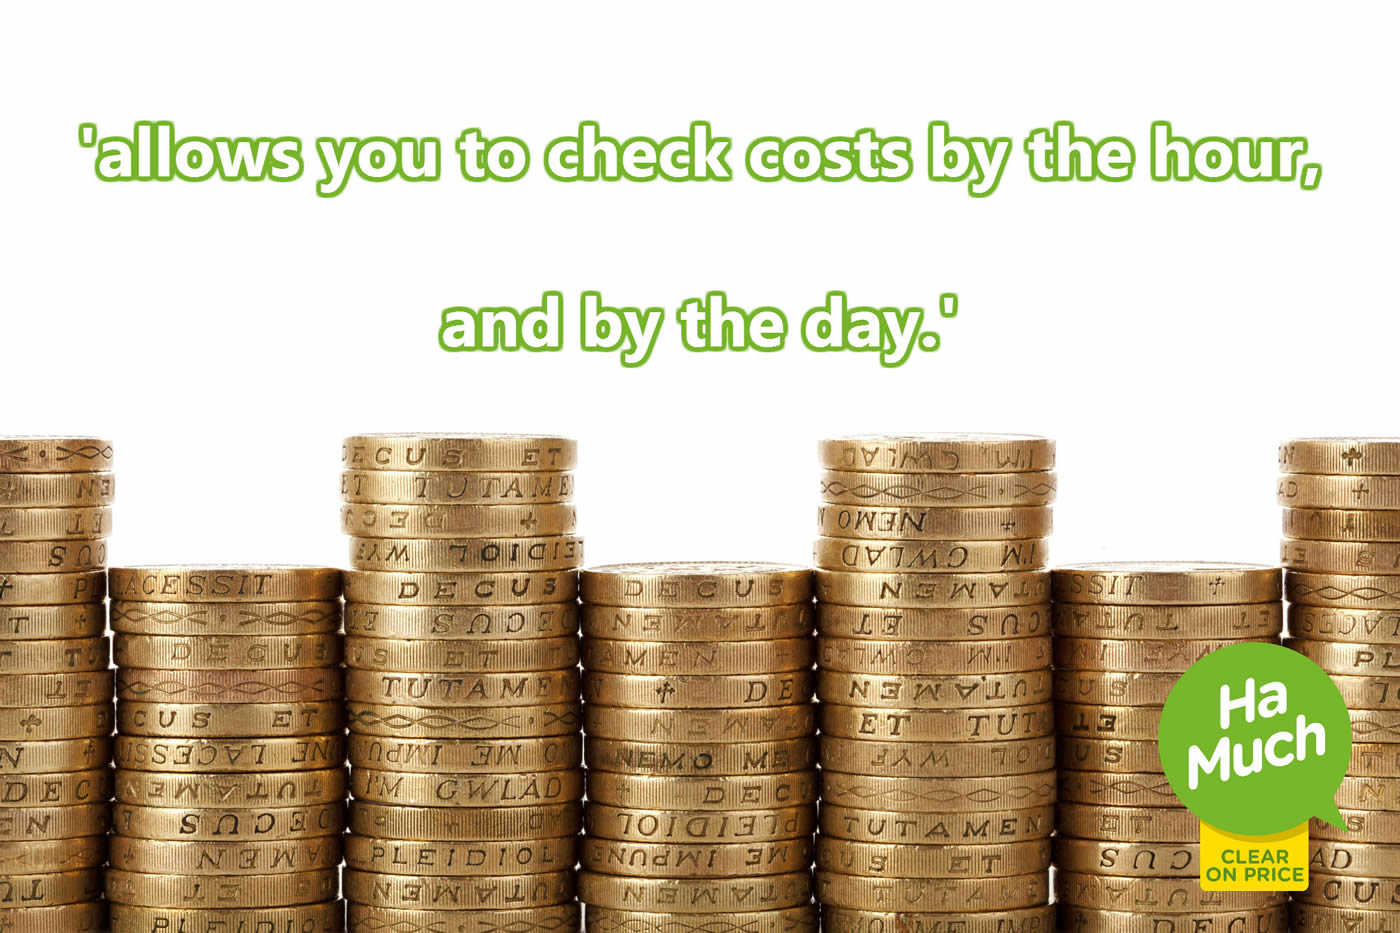 Check costs